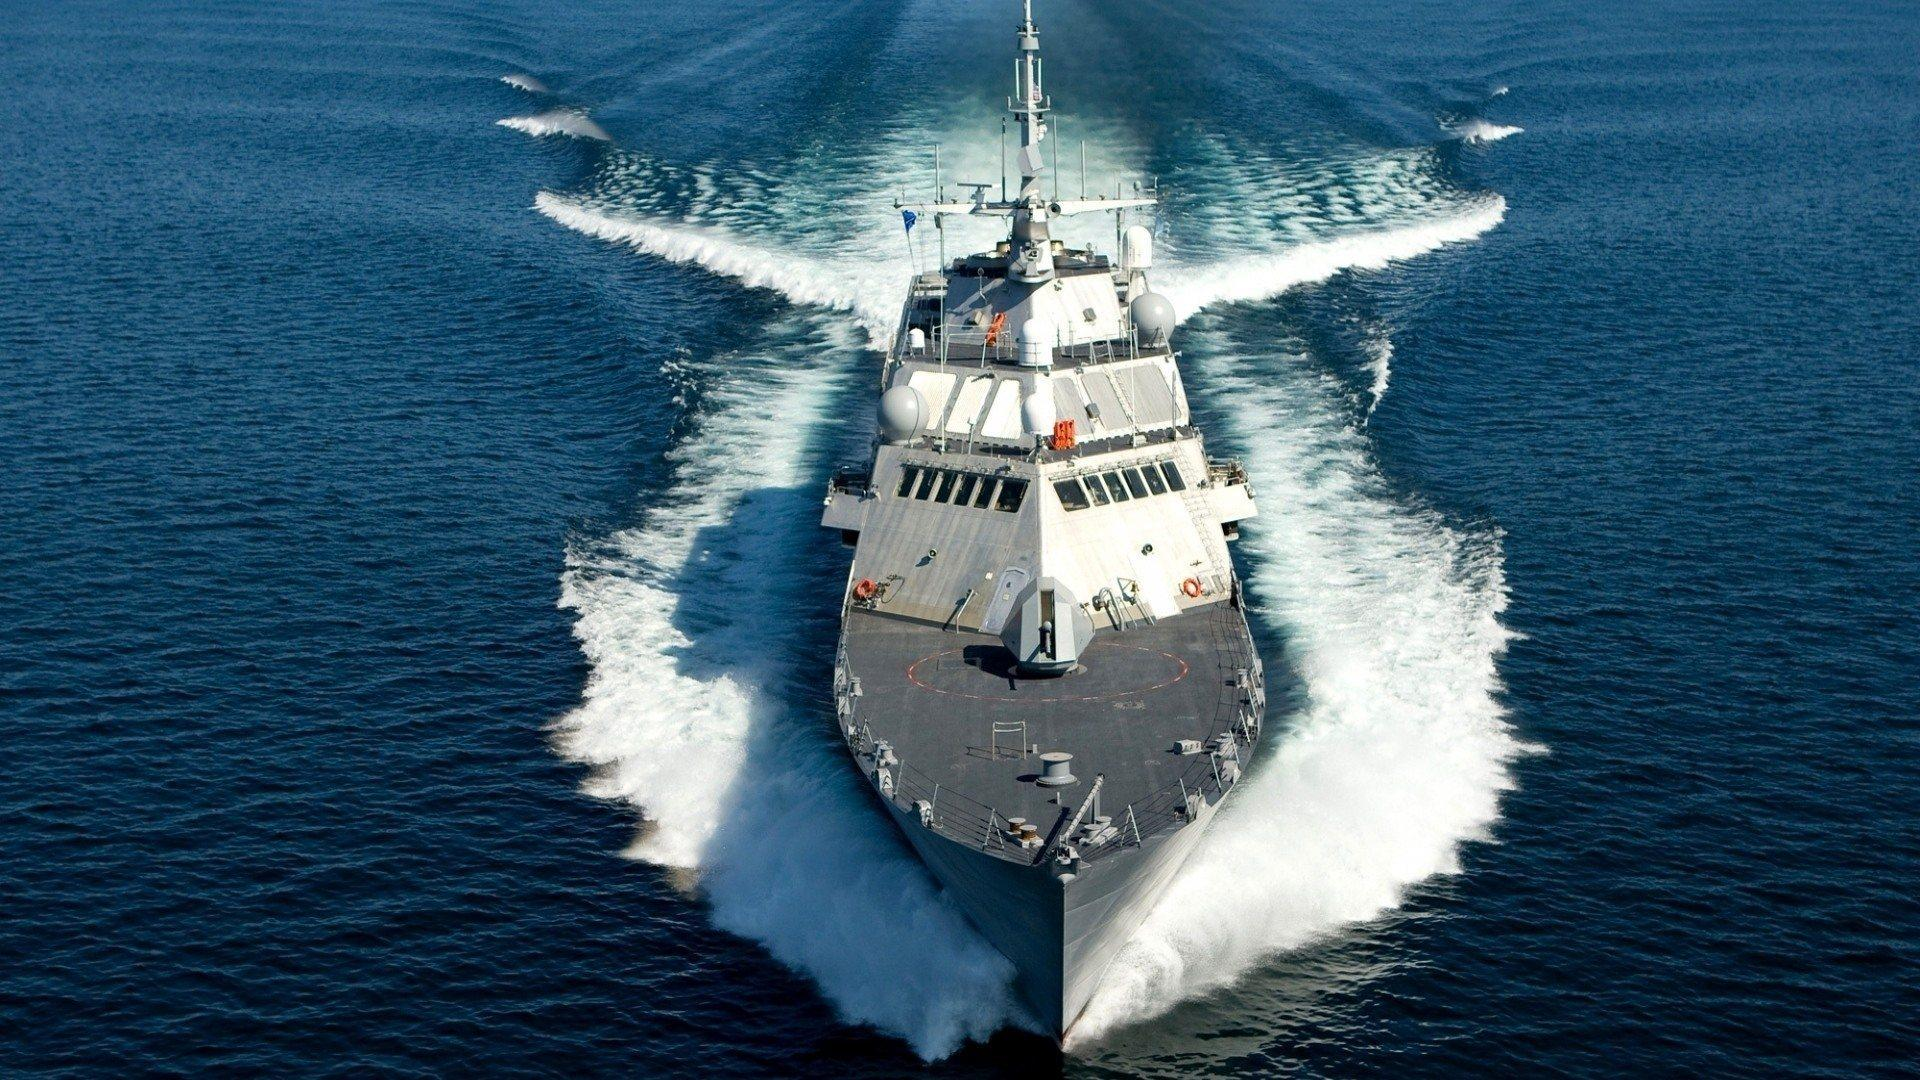 Navy Ships Wallpapers